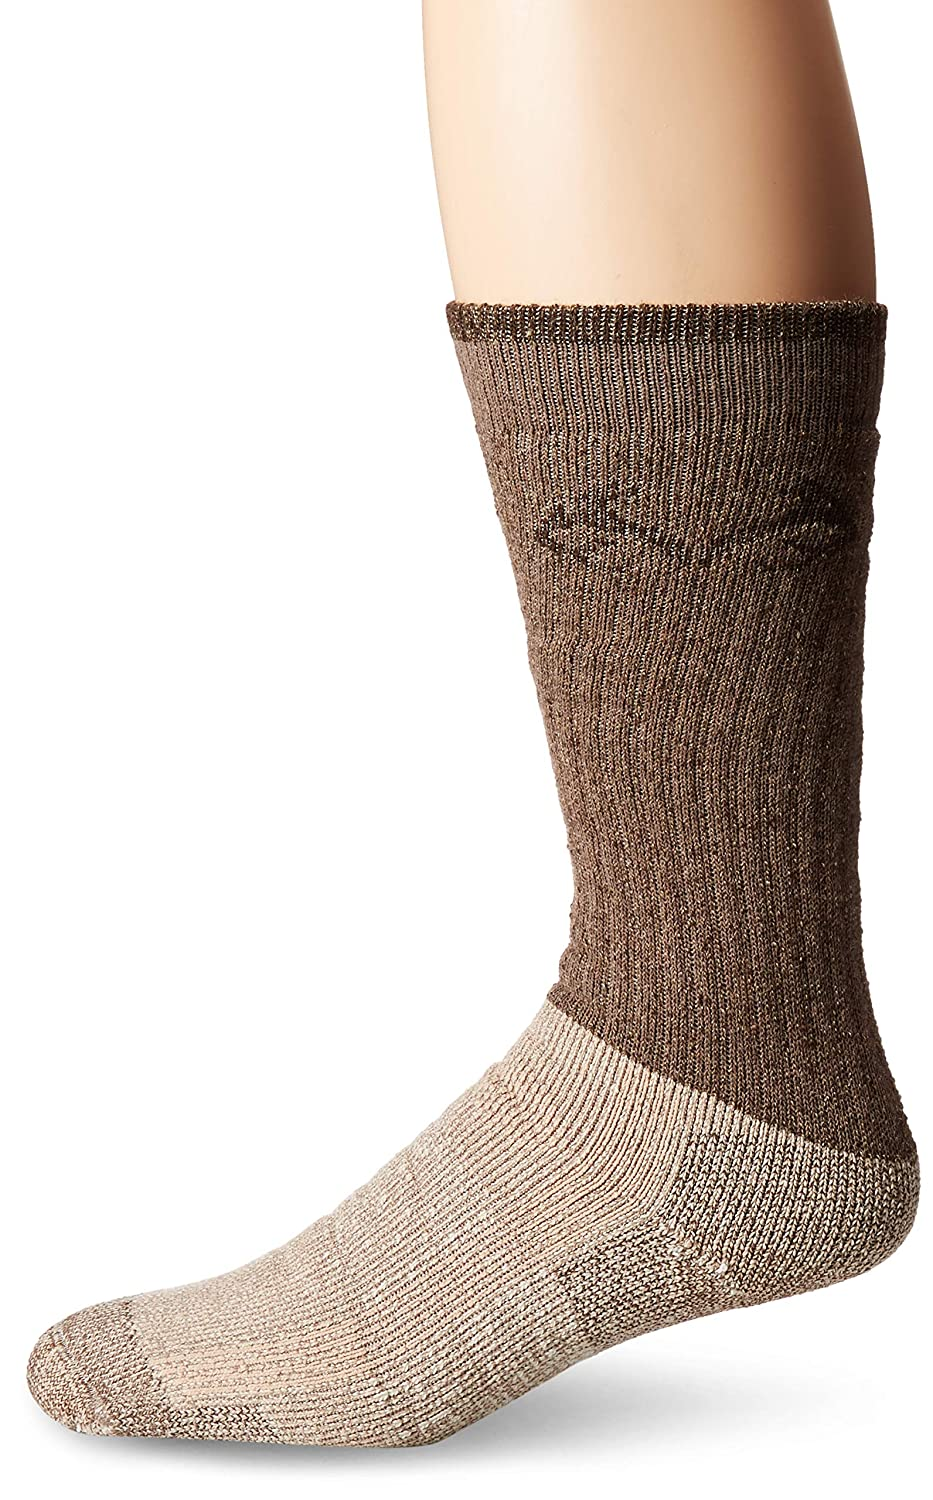 RealTree Cupron Antimicrobial Boot Socks 1 Pair Brown Large Carolina Hoisery 793-Brown-Large